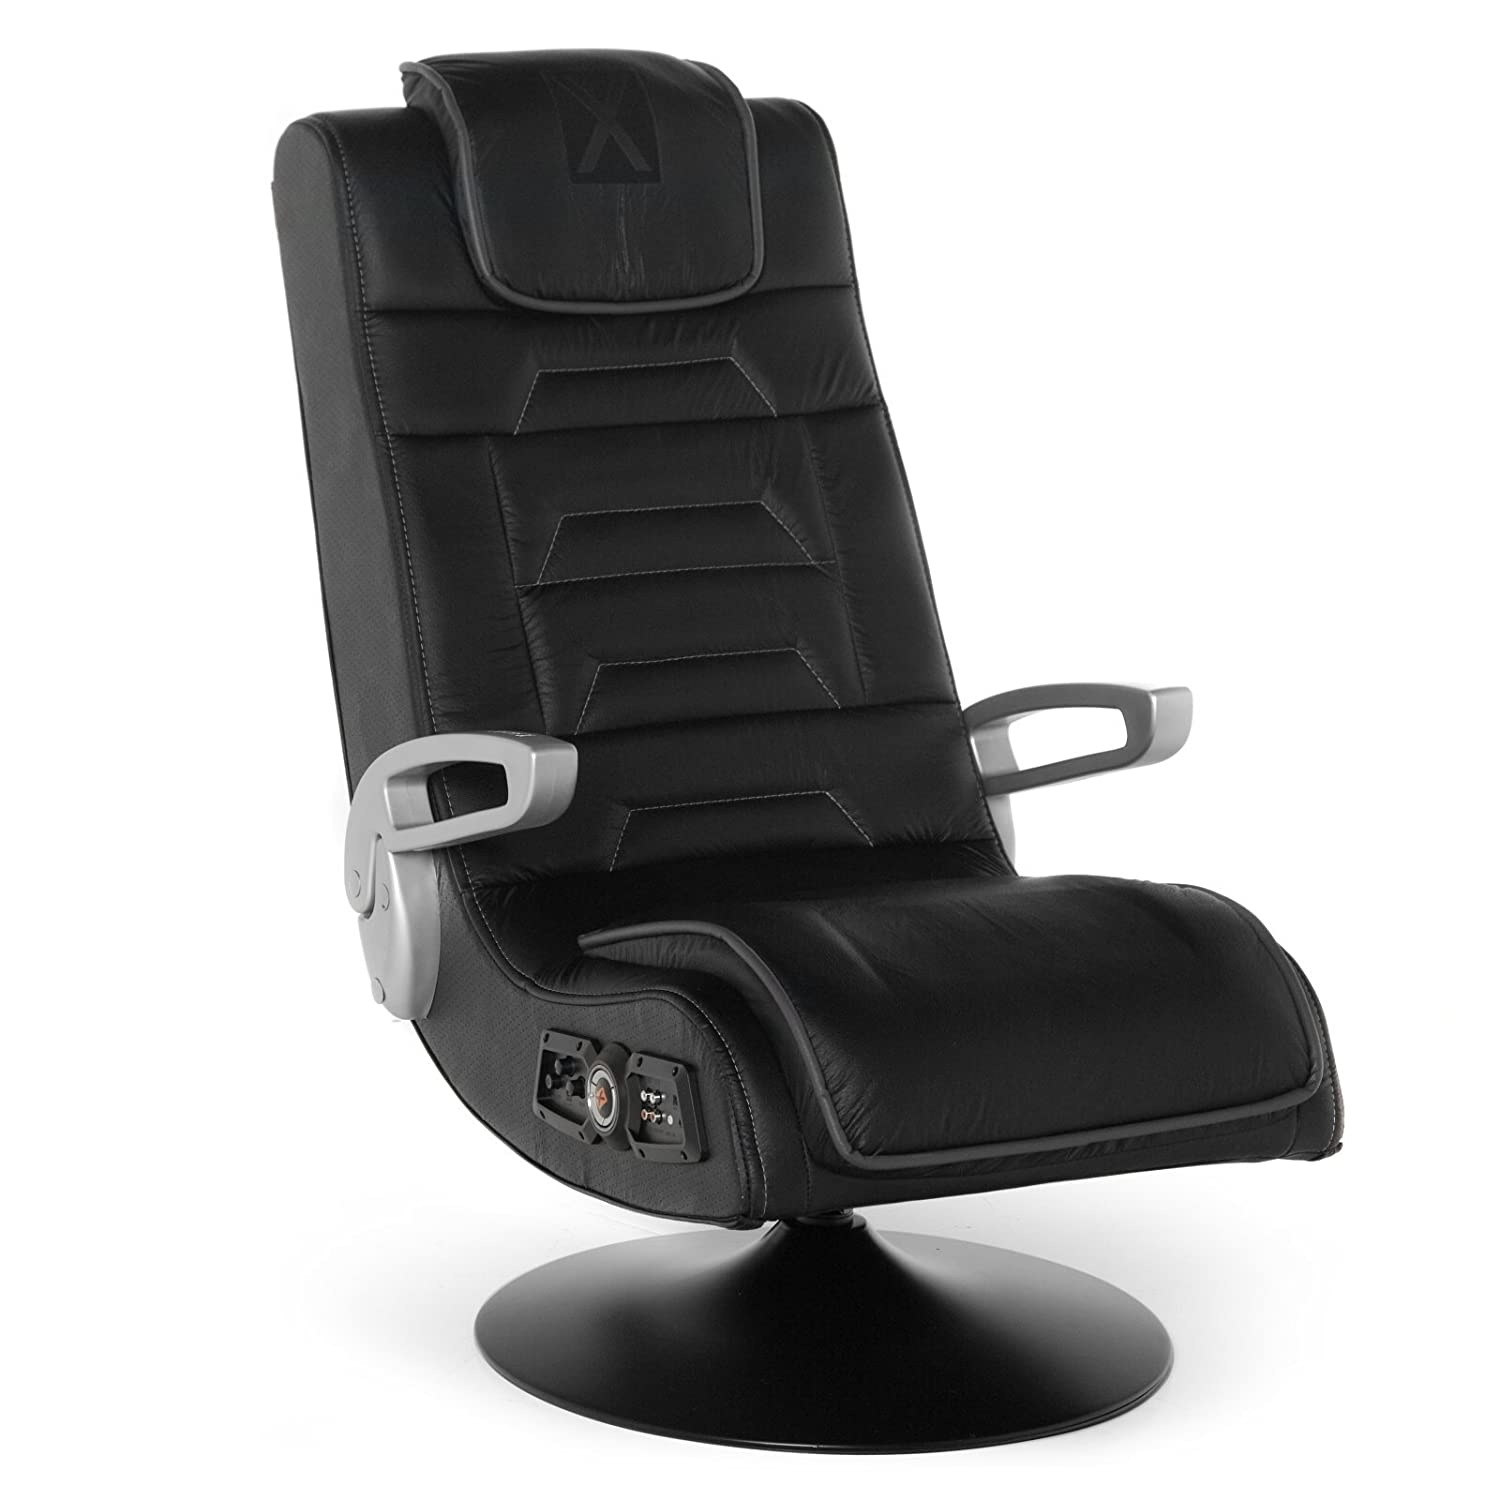 x rocker pro review are gaming chairs still a thing. Black Bedroom Furniture Sets. Home Design Ideas